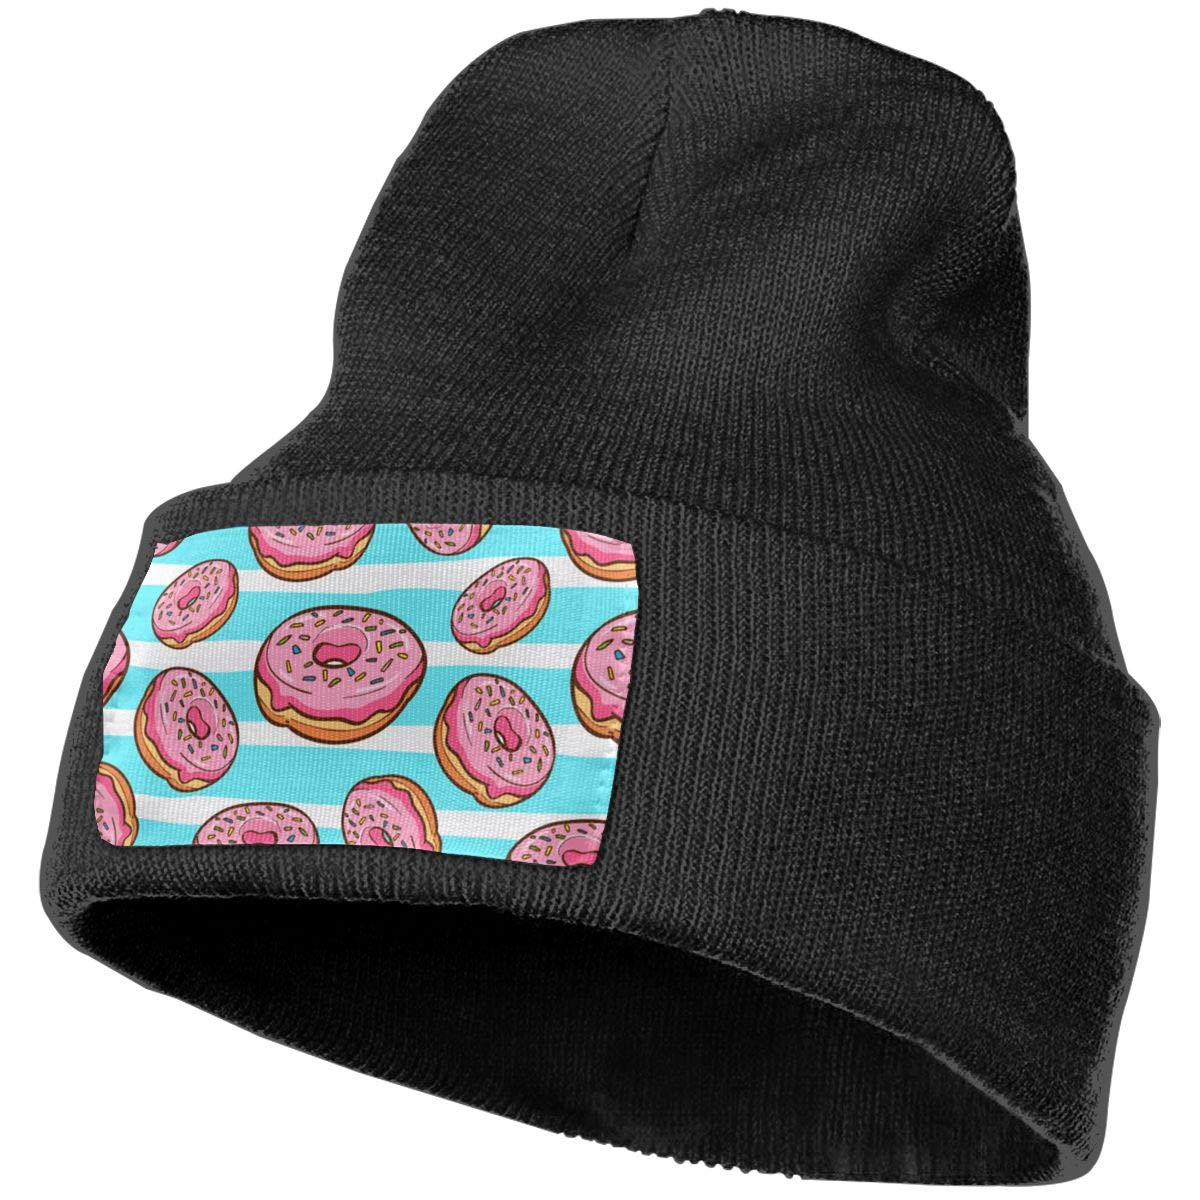 ONHIM Donuts Men /& Women Stretchy Kintted Beanie Hat Slouchy Ski Hats